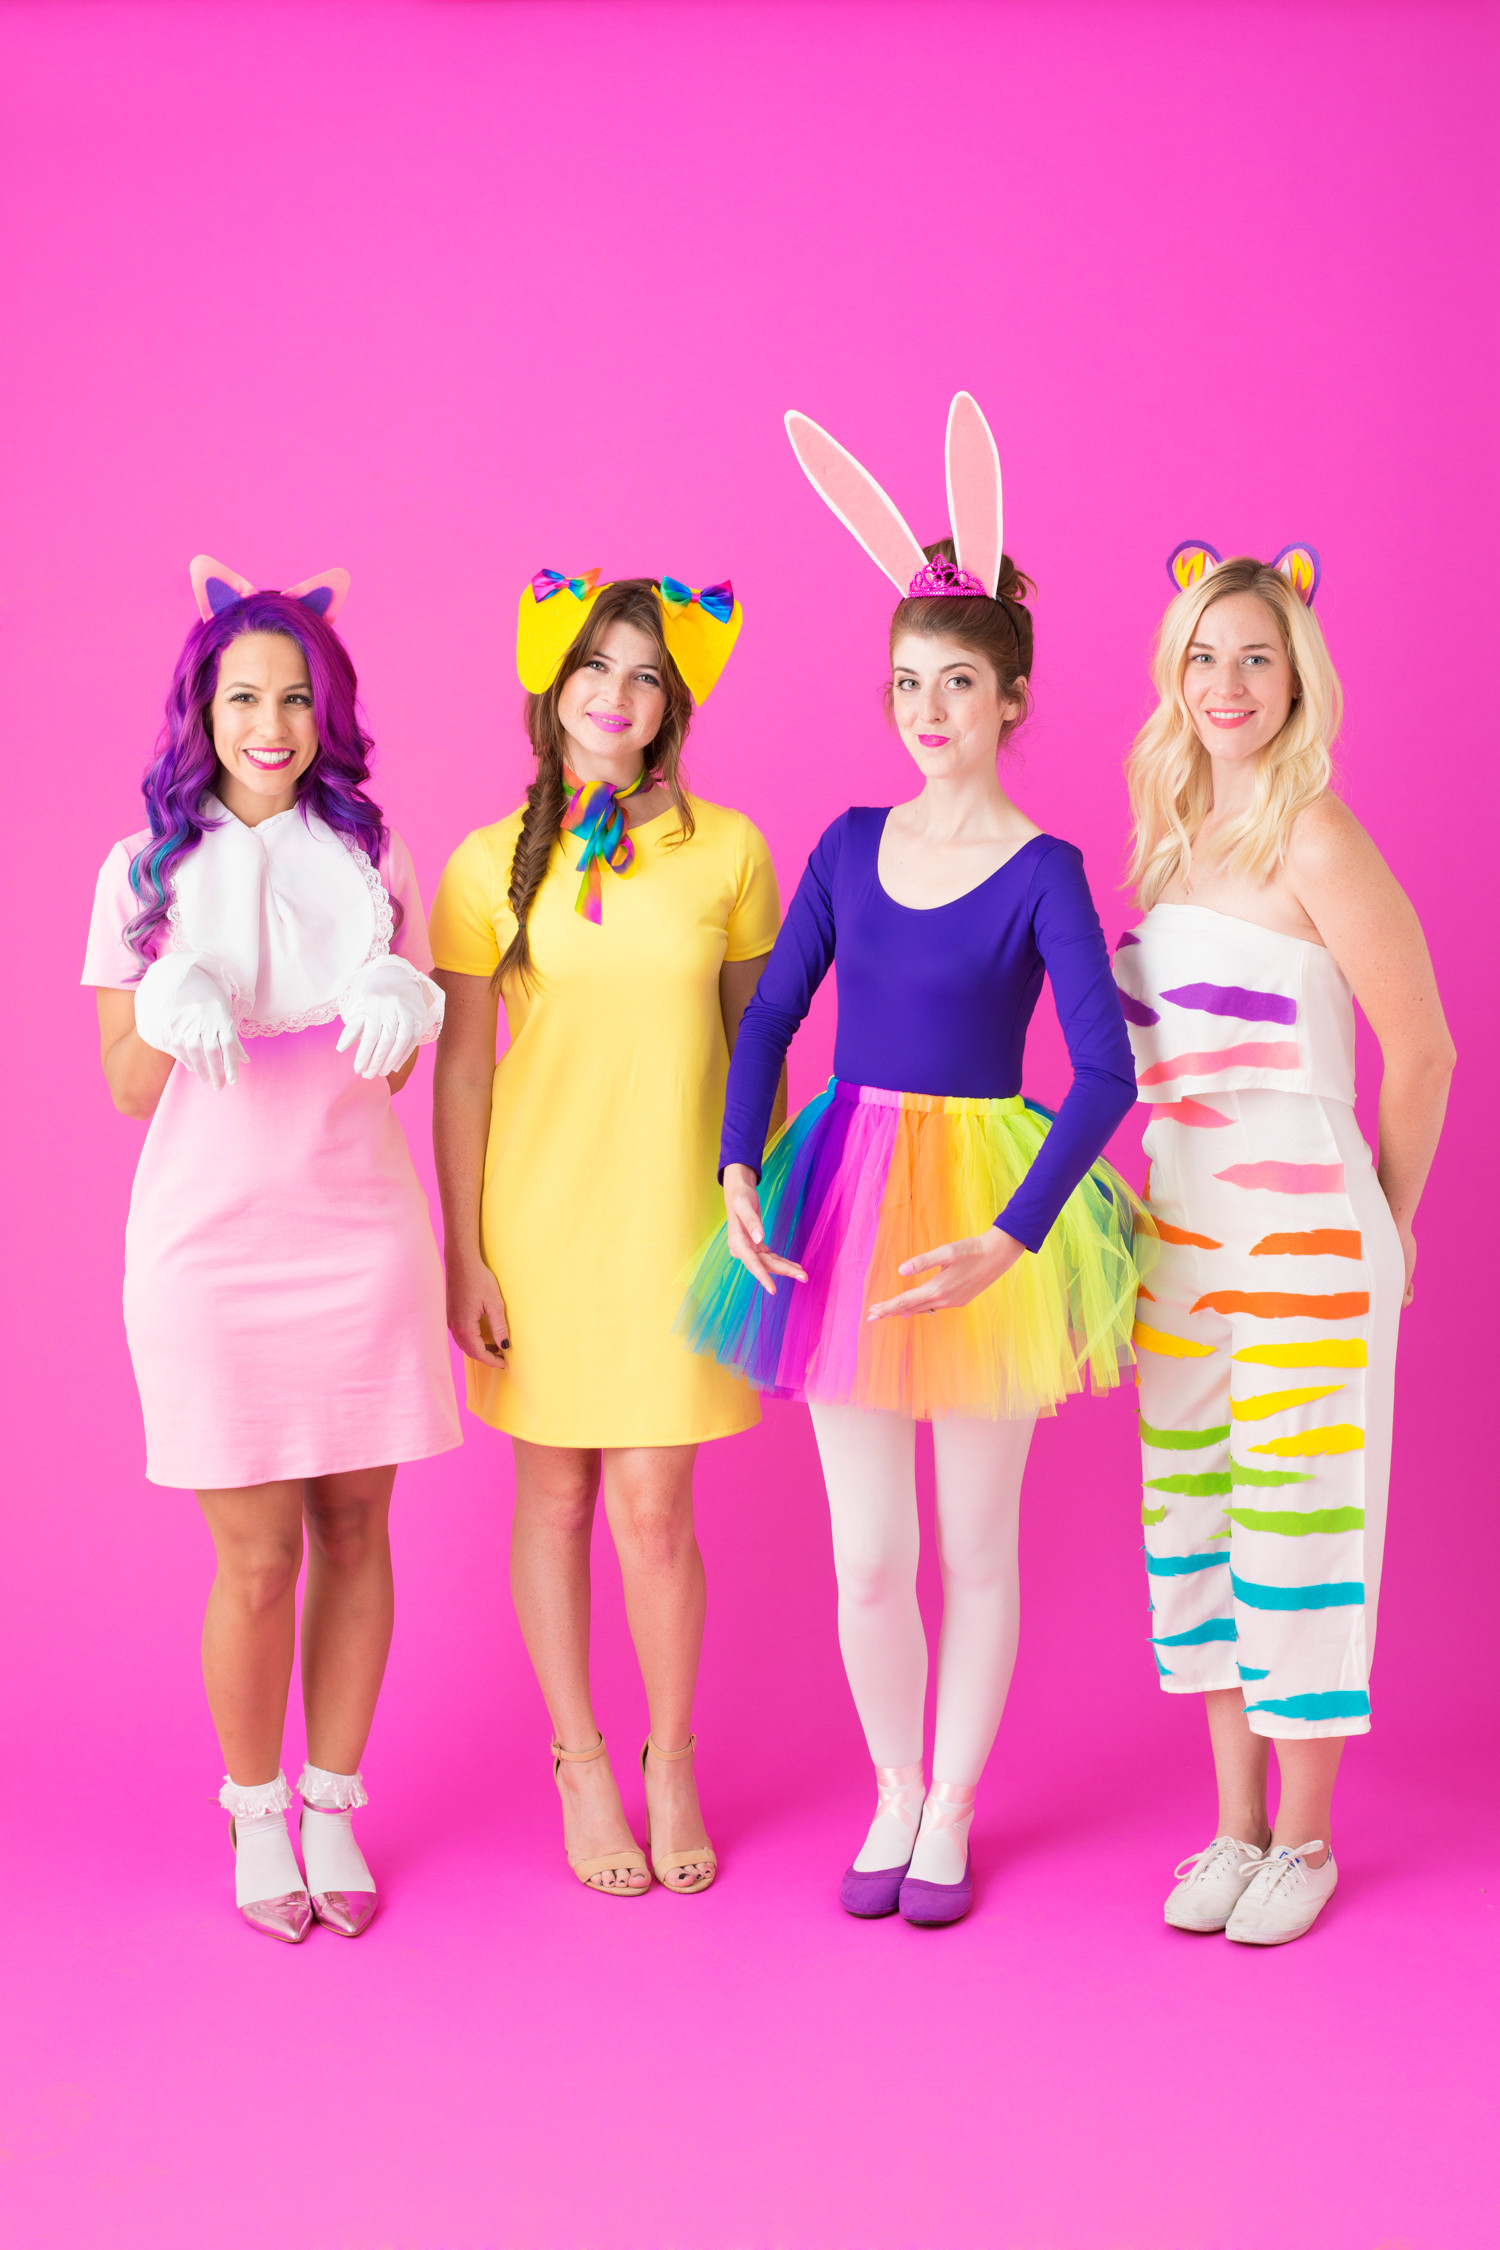 Best ideas about DIY M&M Costume . Save or Pin DIY Lisa Frank Costumes Round 2 Studio DIY Now.